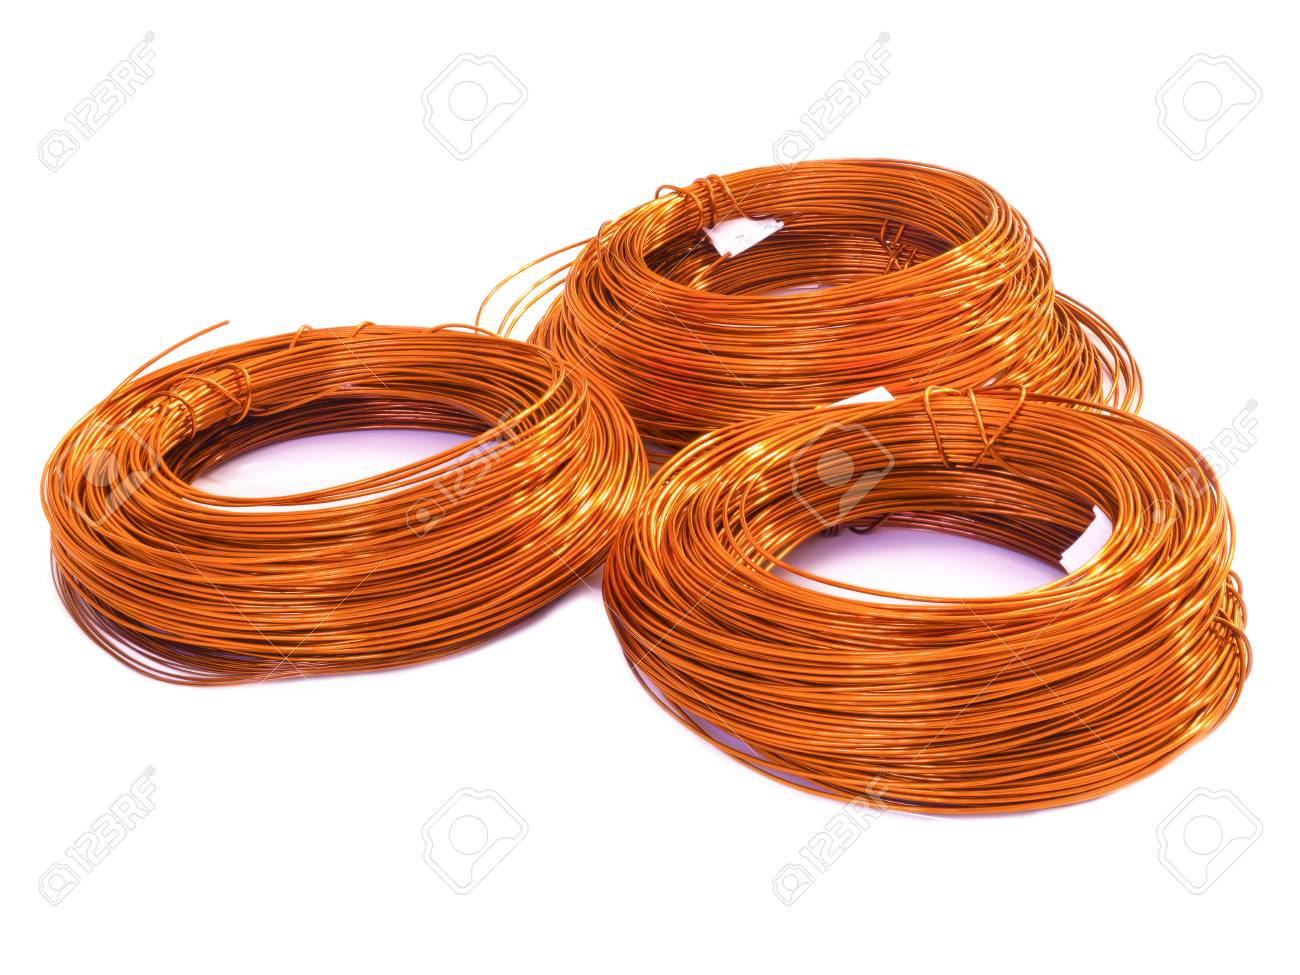 Coil Of Copper Wire On White Background Stock Photo, Picture And ...